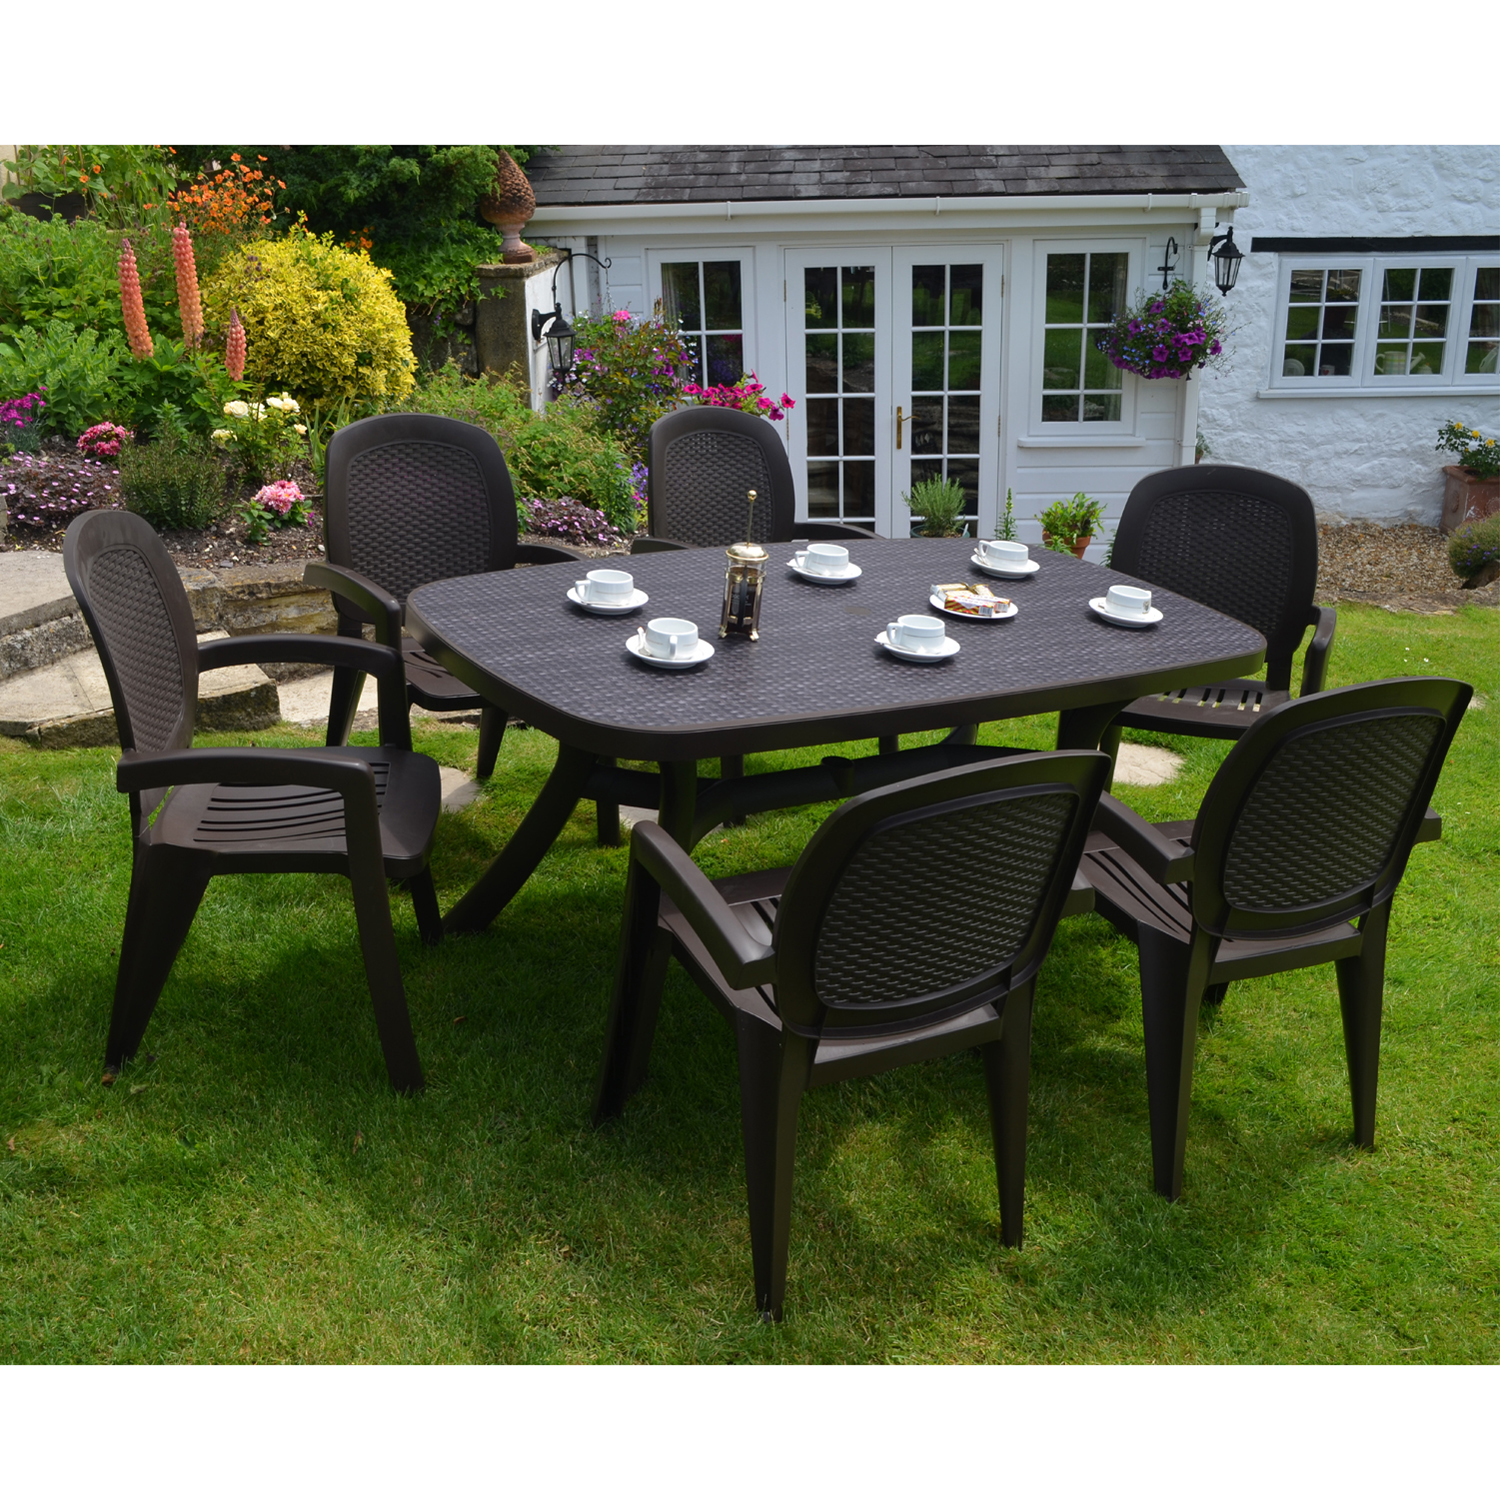 Toscana 165 wicker coffee europa leisure uk for Plastic garden furniture